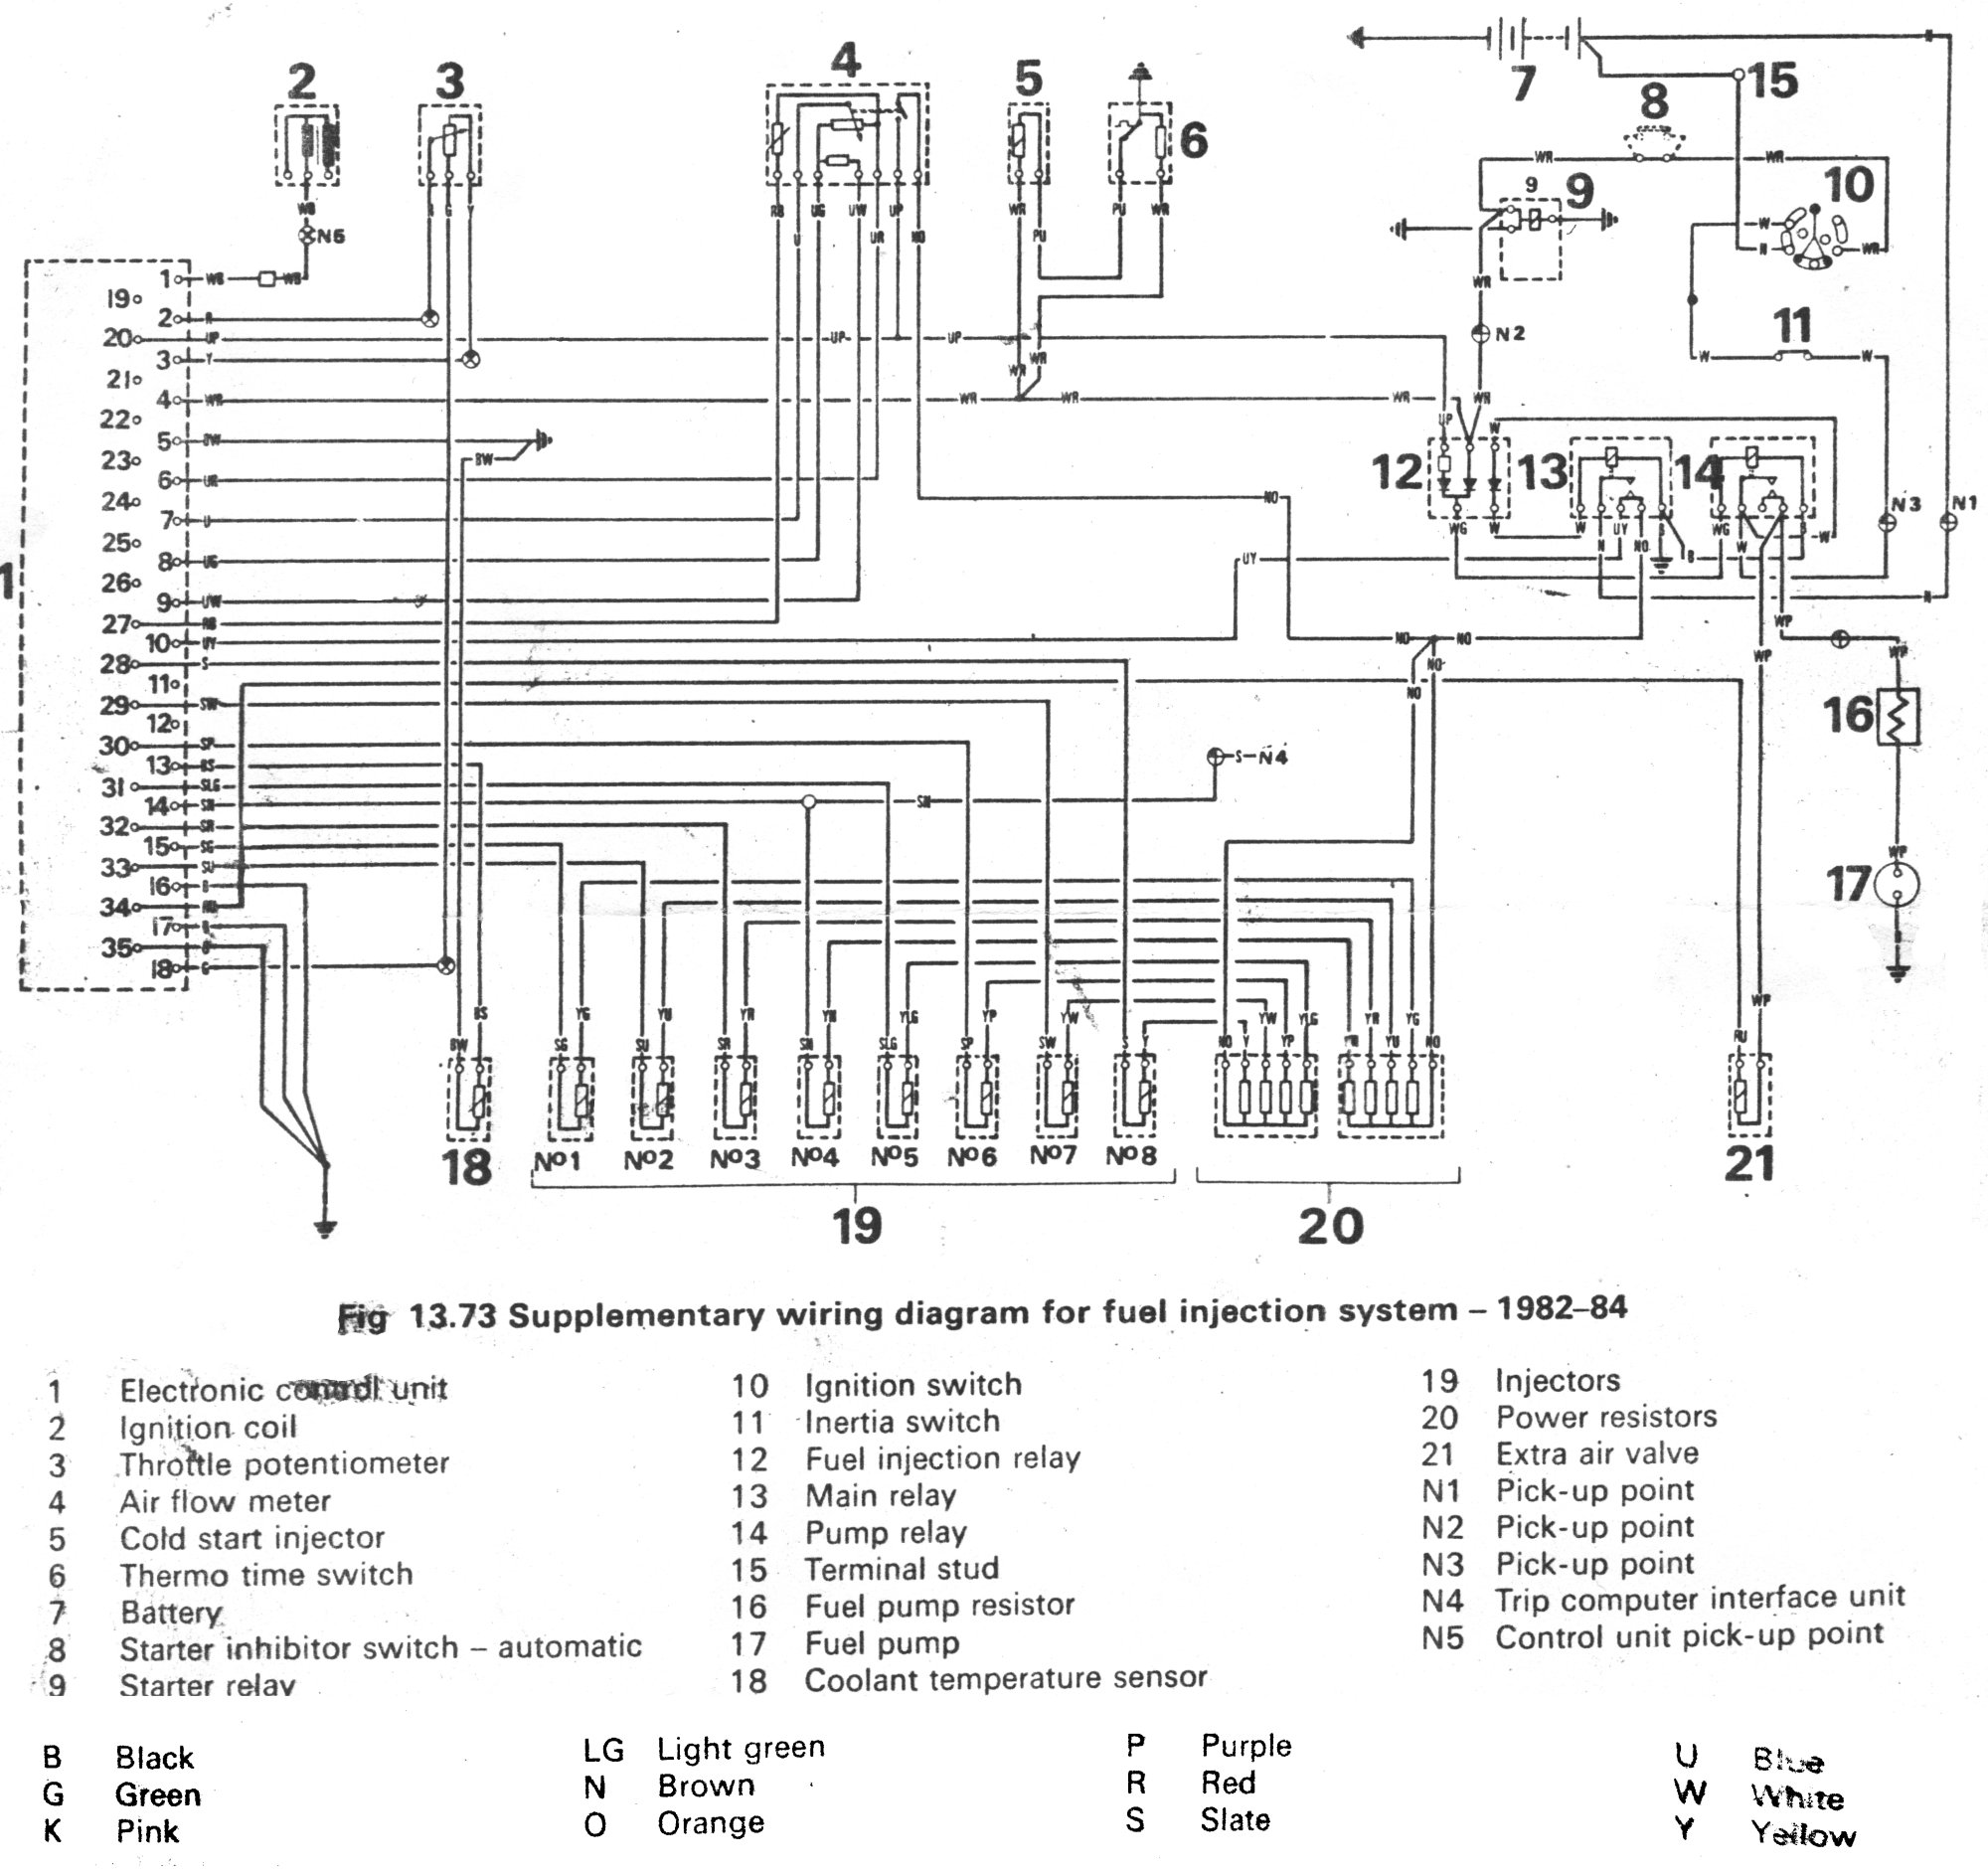 Cool Mazda B3000 Wiring Diagram Pdf Contemporary Electrical And 2004 Mazda B2300 Fuse Box 2003 Mazda B3000 Fuse Box Diagram 1998 Mazda B3000 Fuse Box Diagram